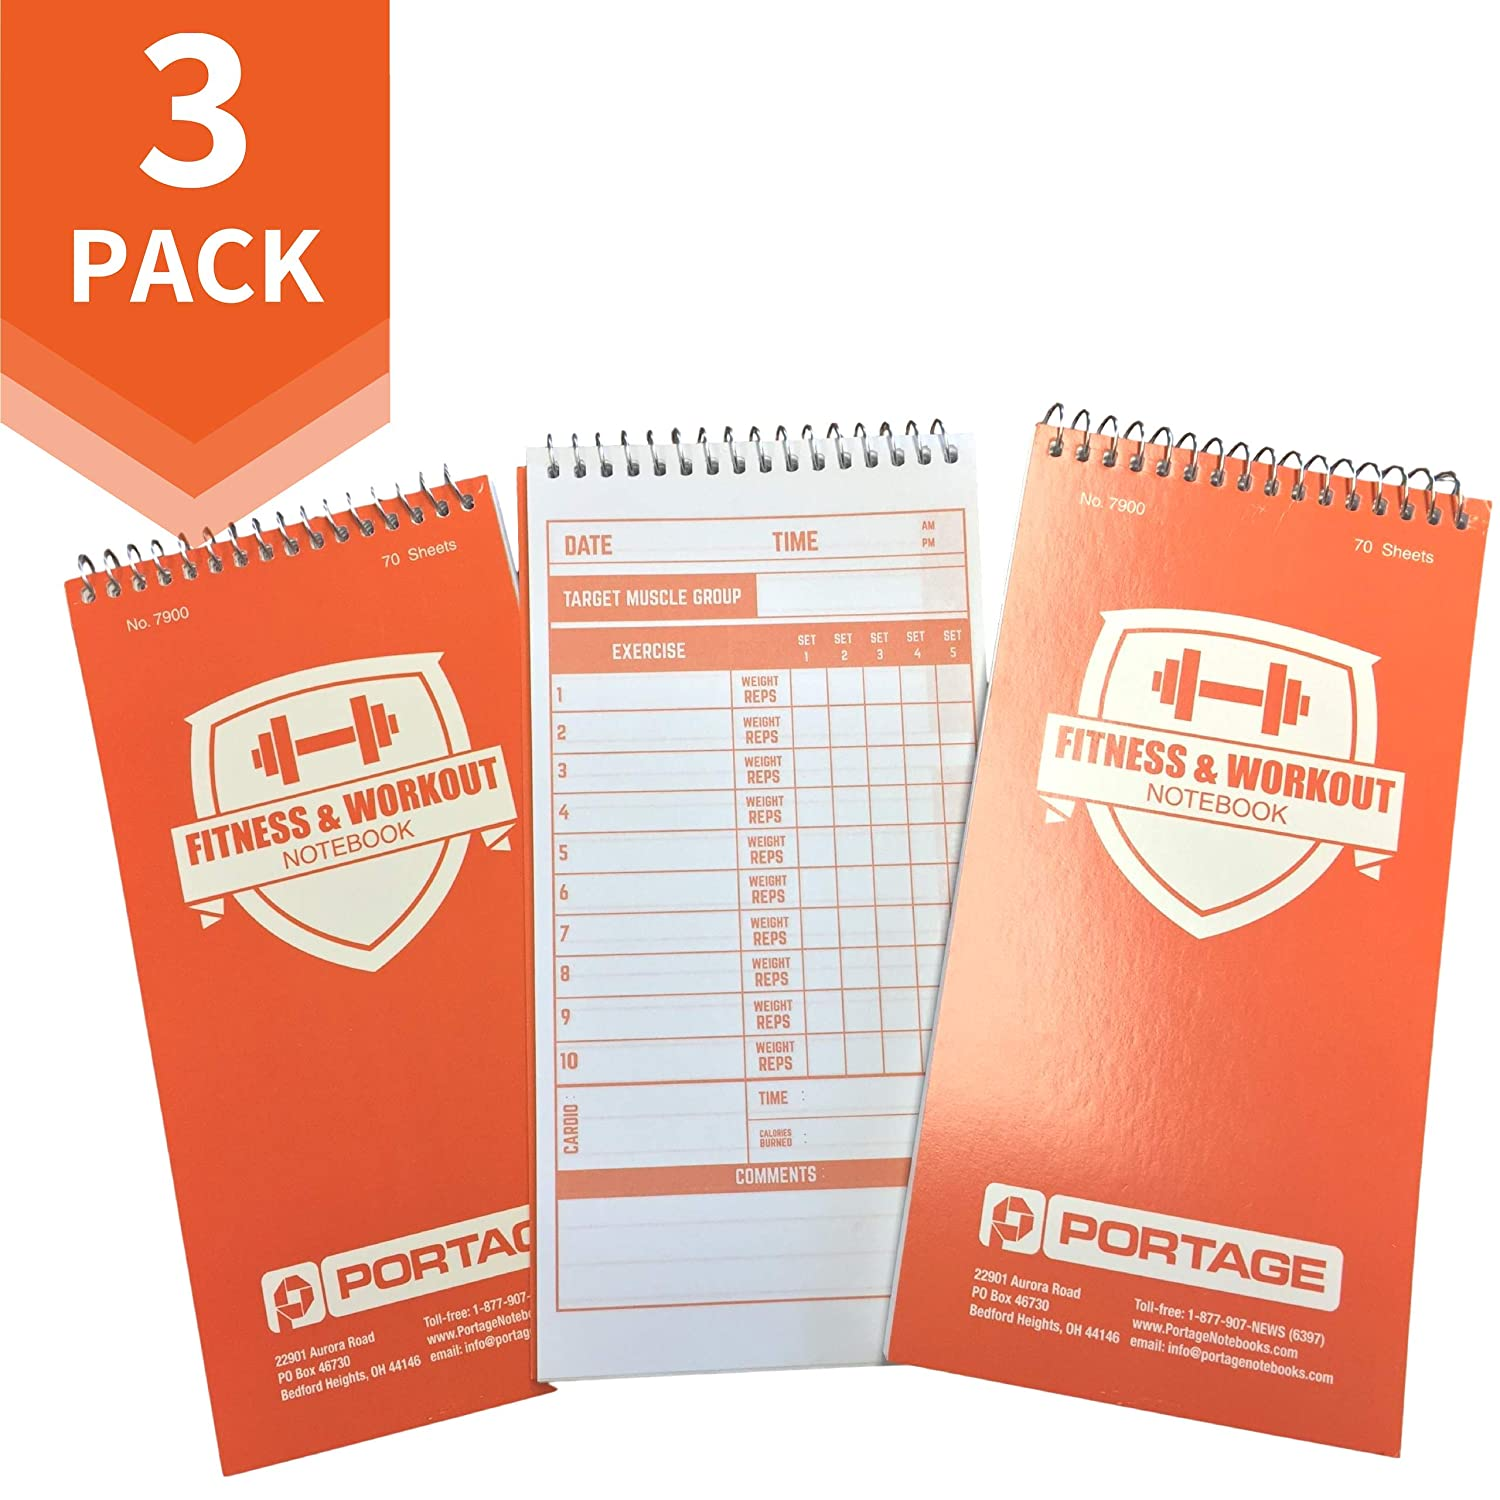 """3 Pack Portage Fitness and Workout Notebook 140 Pages 4/"""" x 8/"""" Sturdy Exercise Journal for Planning and Tracking Workouts to Achieve Your Fitness Goals"""